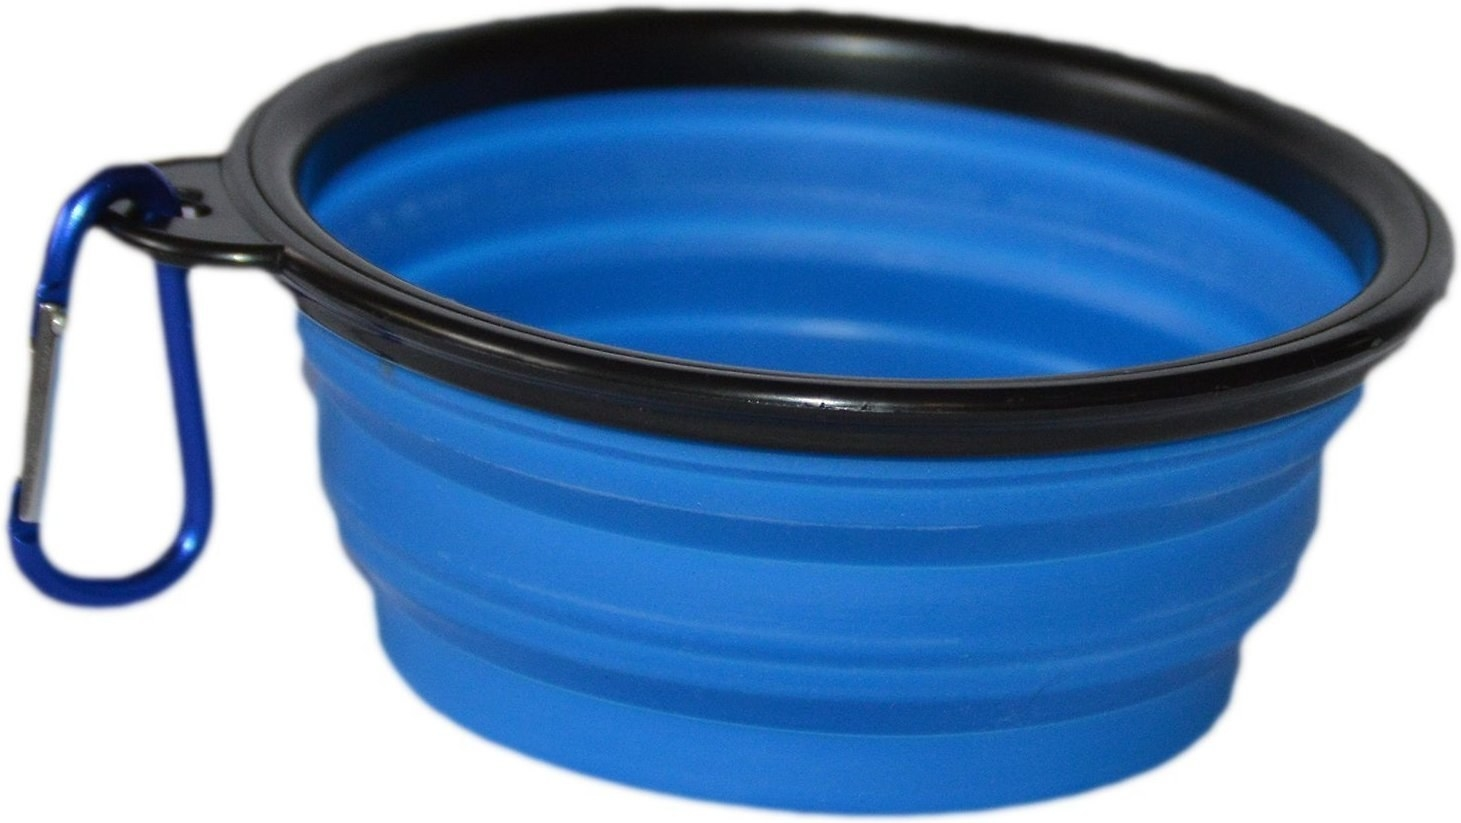 collapsable silicone bowl with carabiner attached